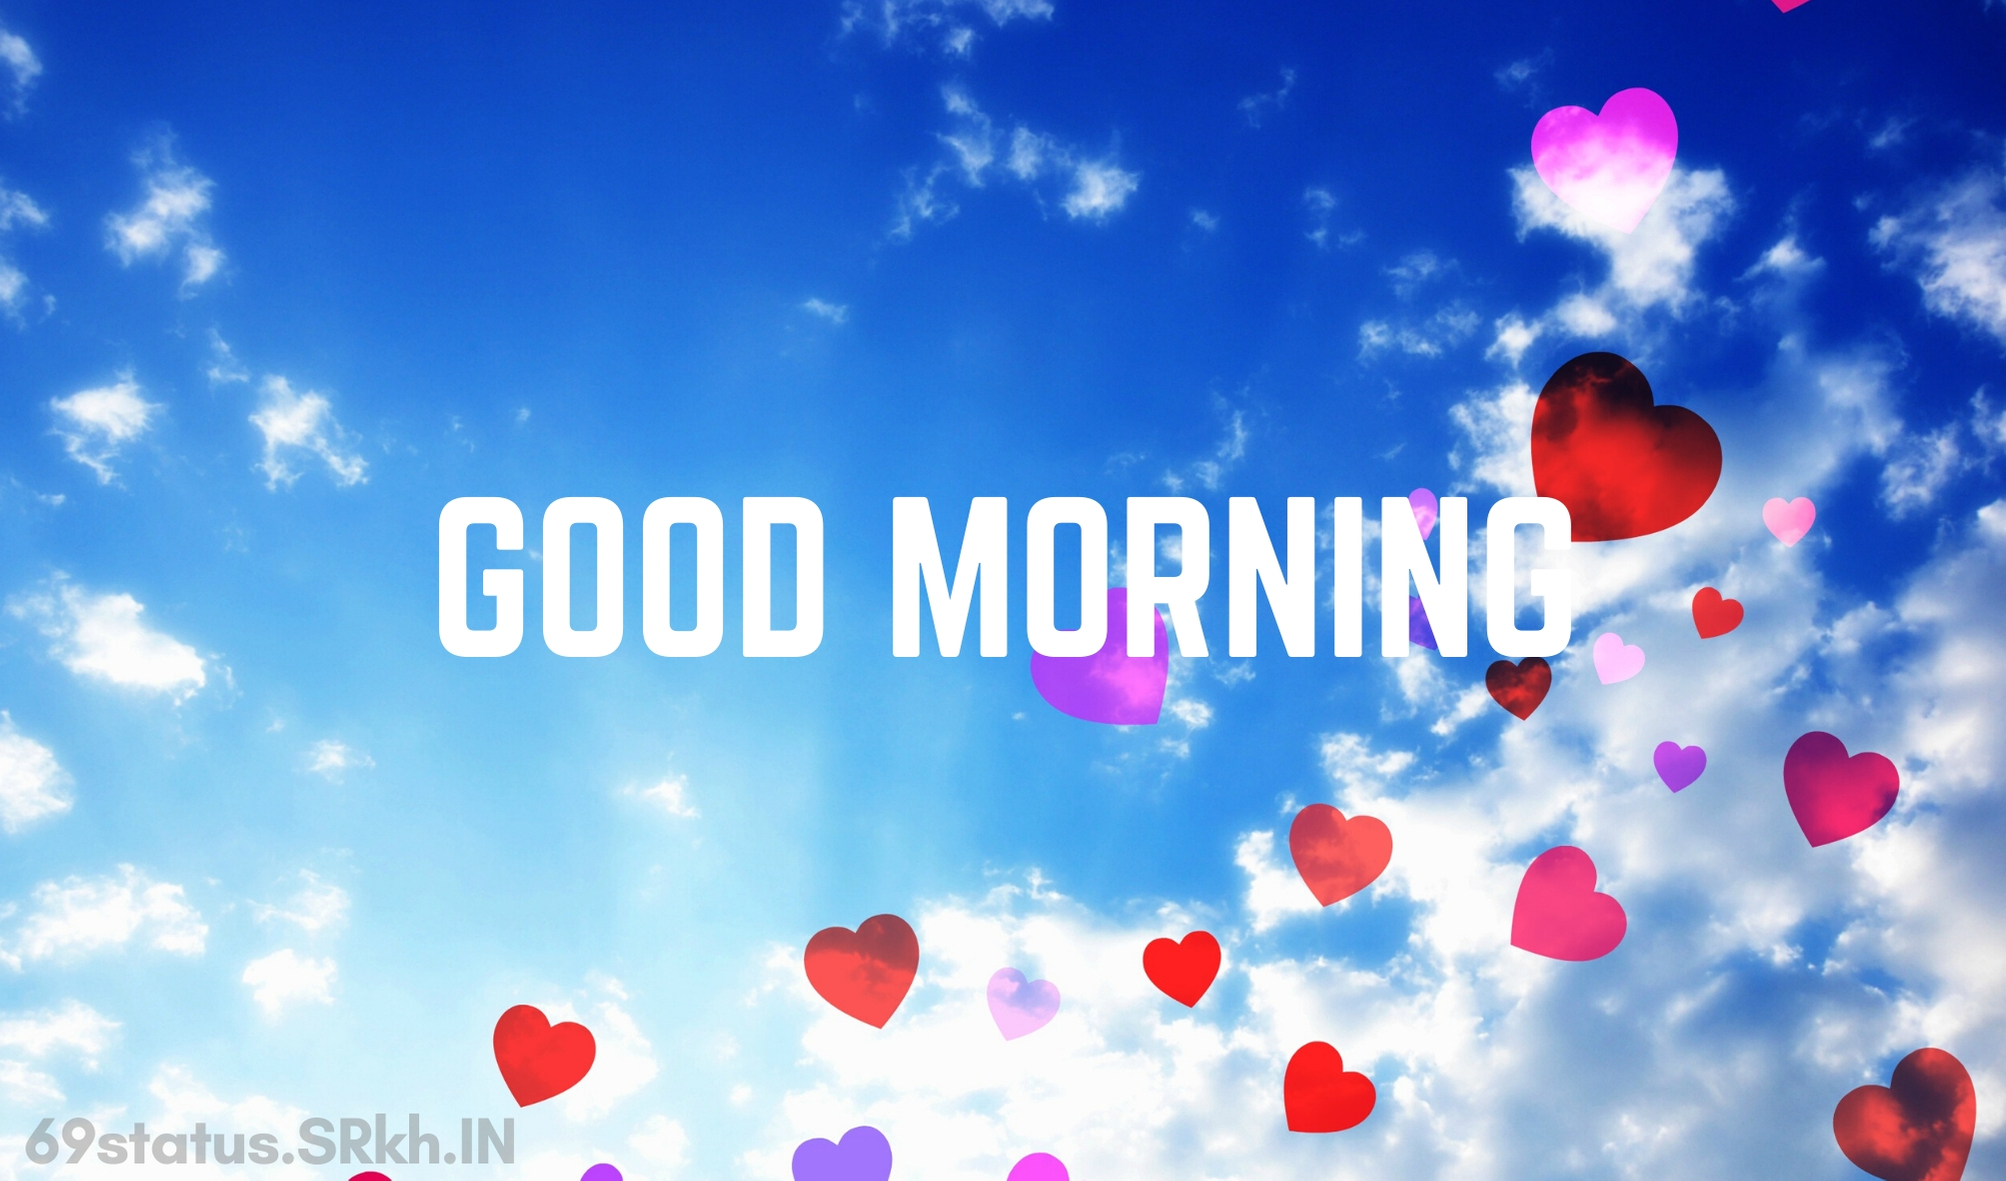 Good Morning Romantic blue sky Image full HD free download.